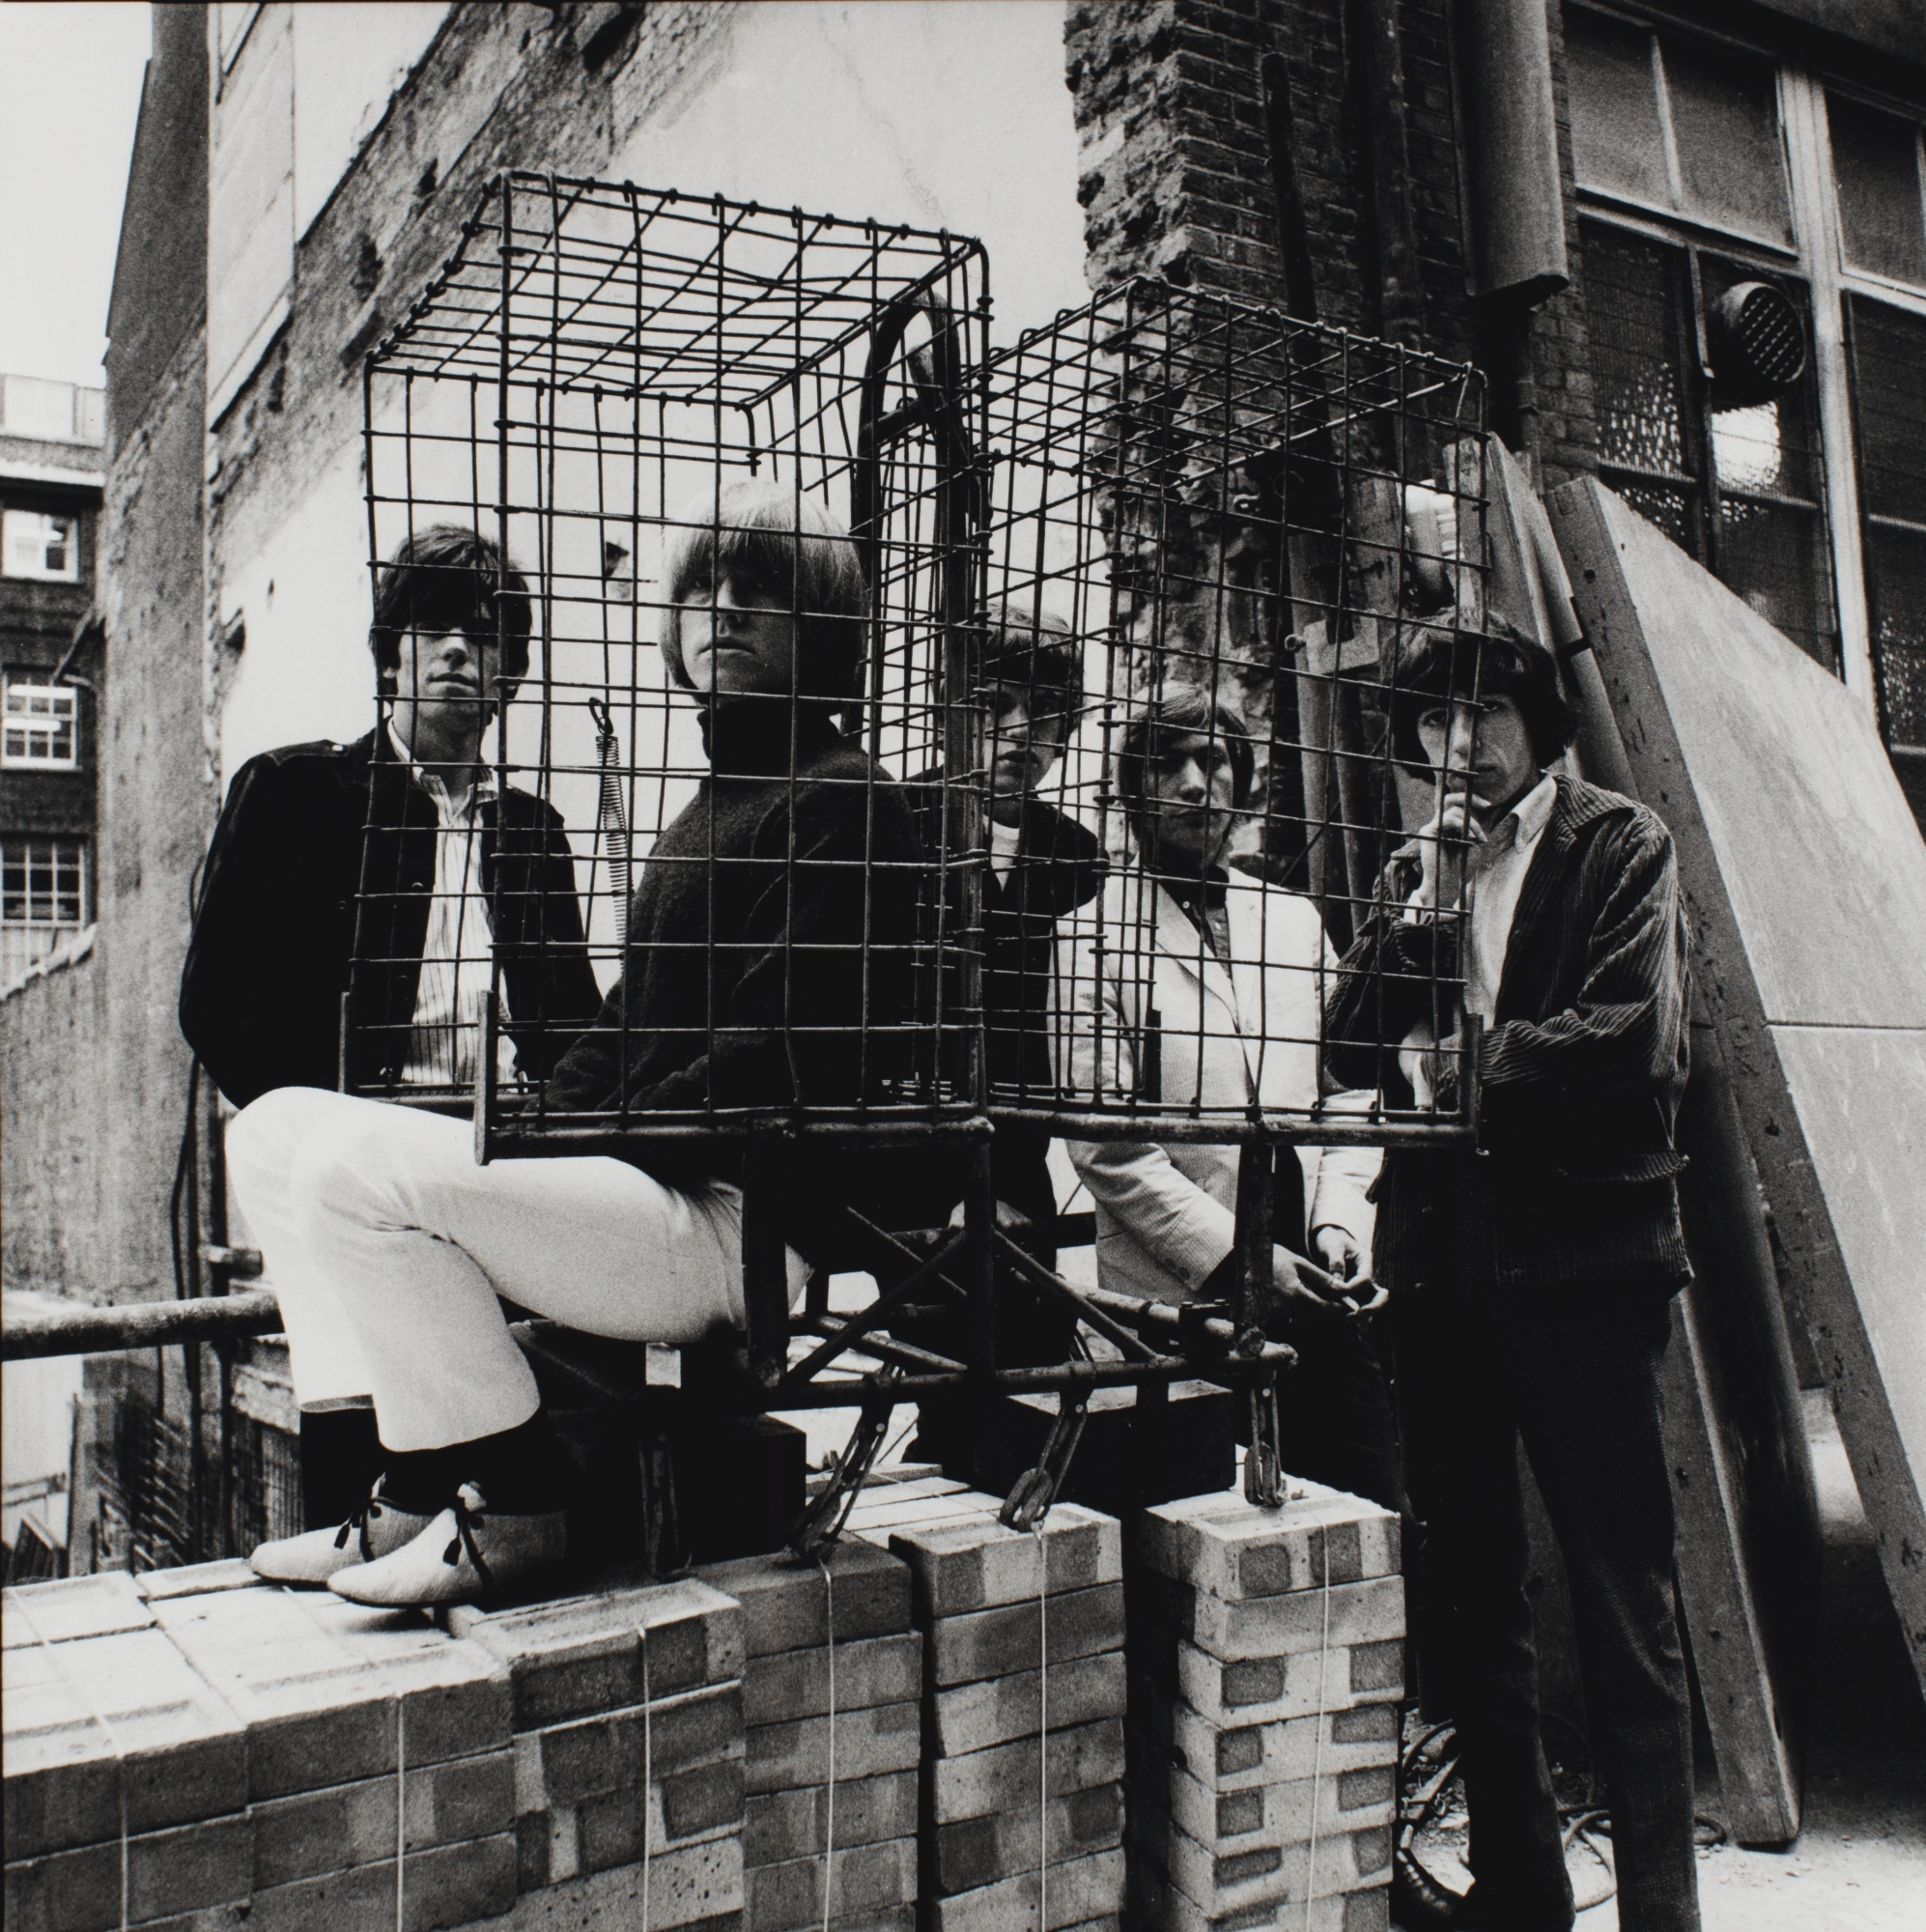 Gered Mankowitz-The Rolling Stones 'Caged II' Ormond Yard London 1965-